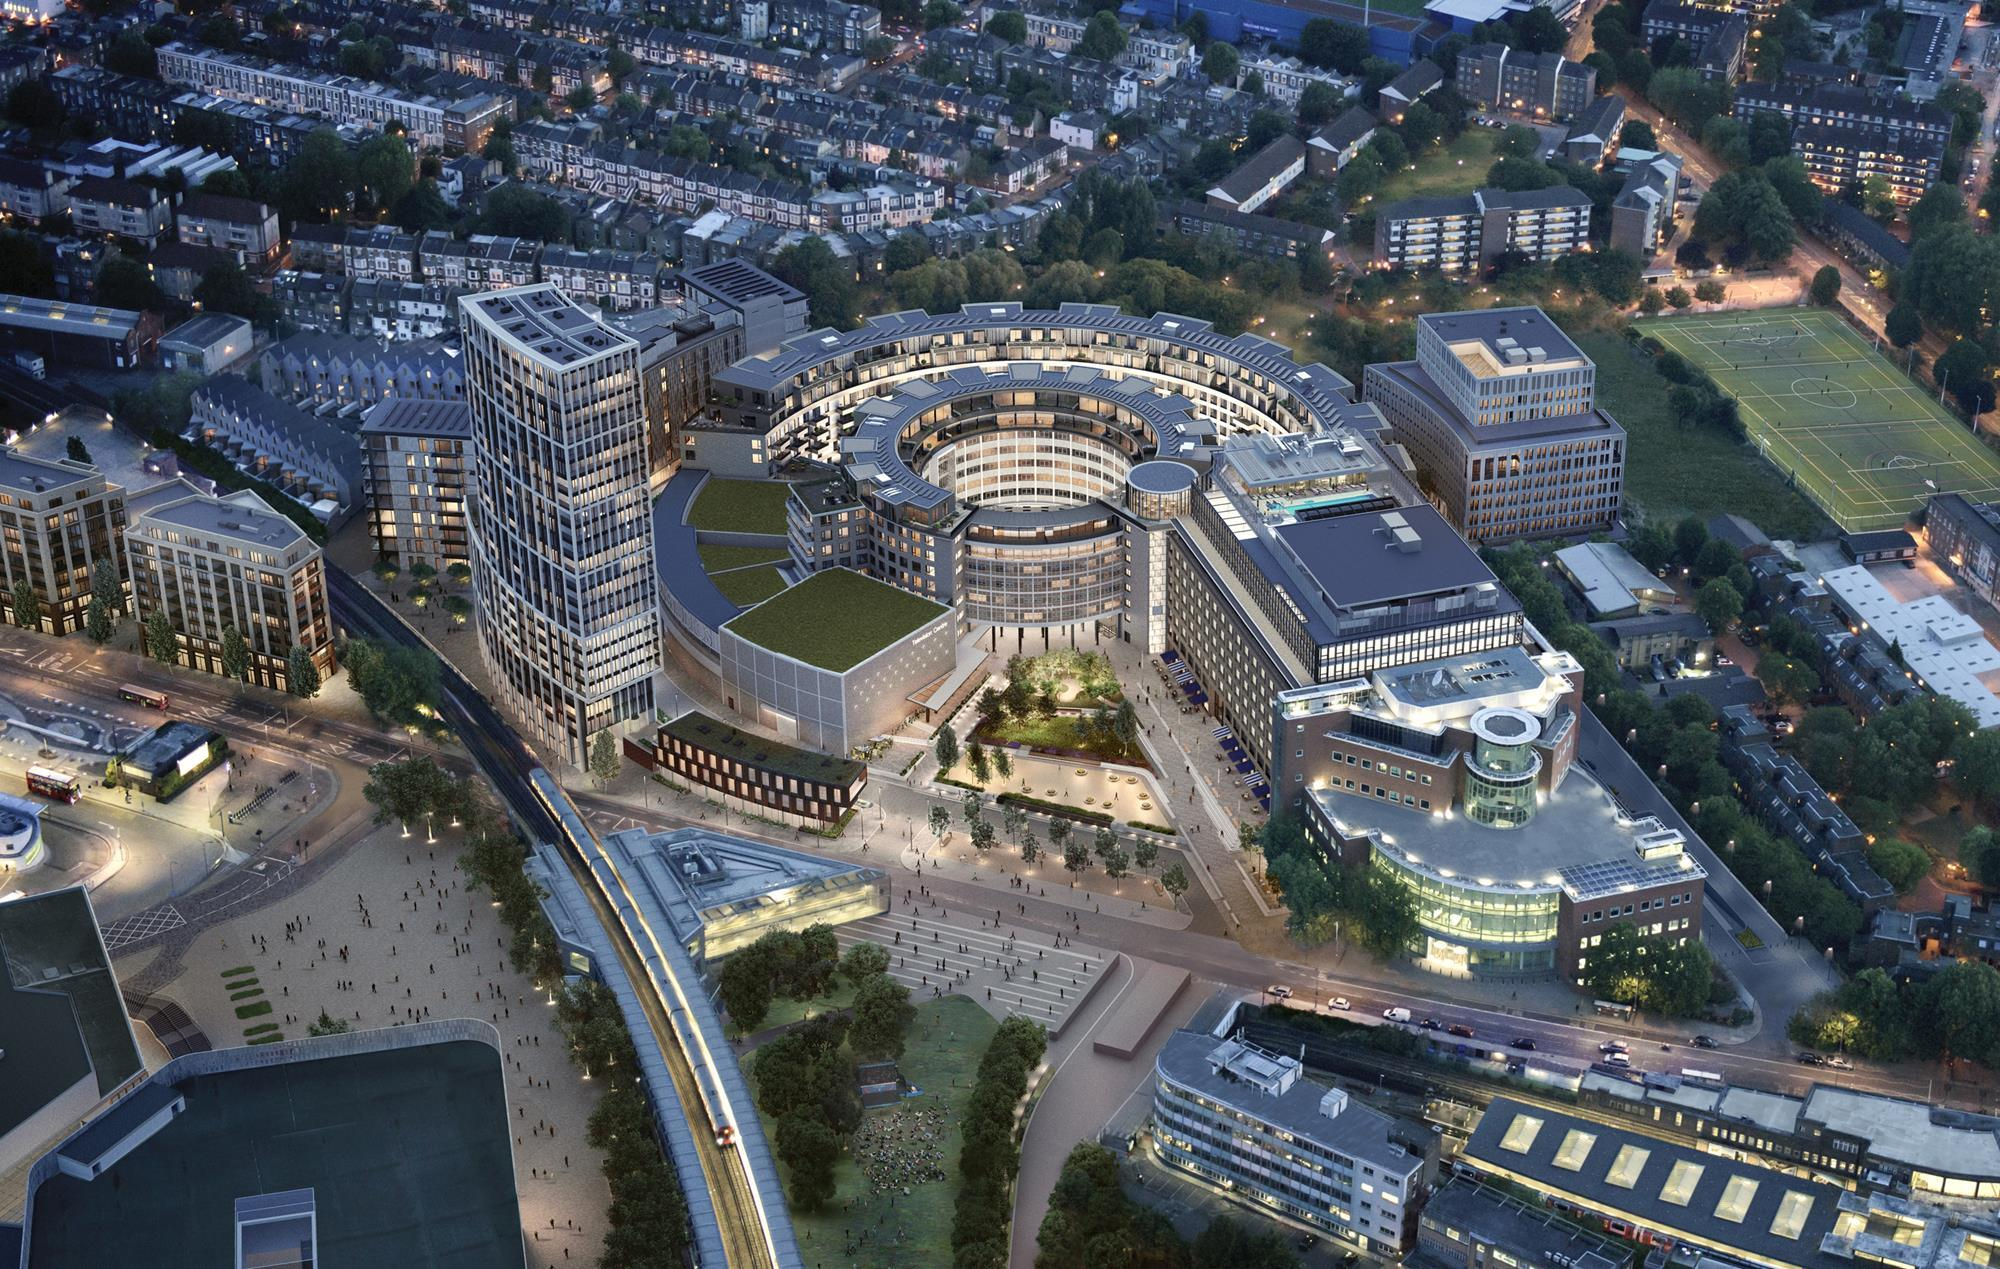 Tv Productions Return To Revamped Bbc Television Centre Industry Trends Ibc